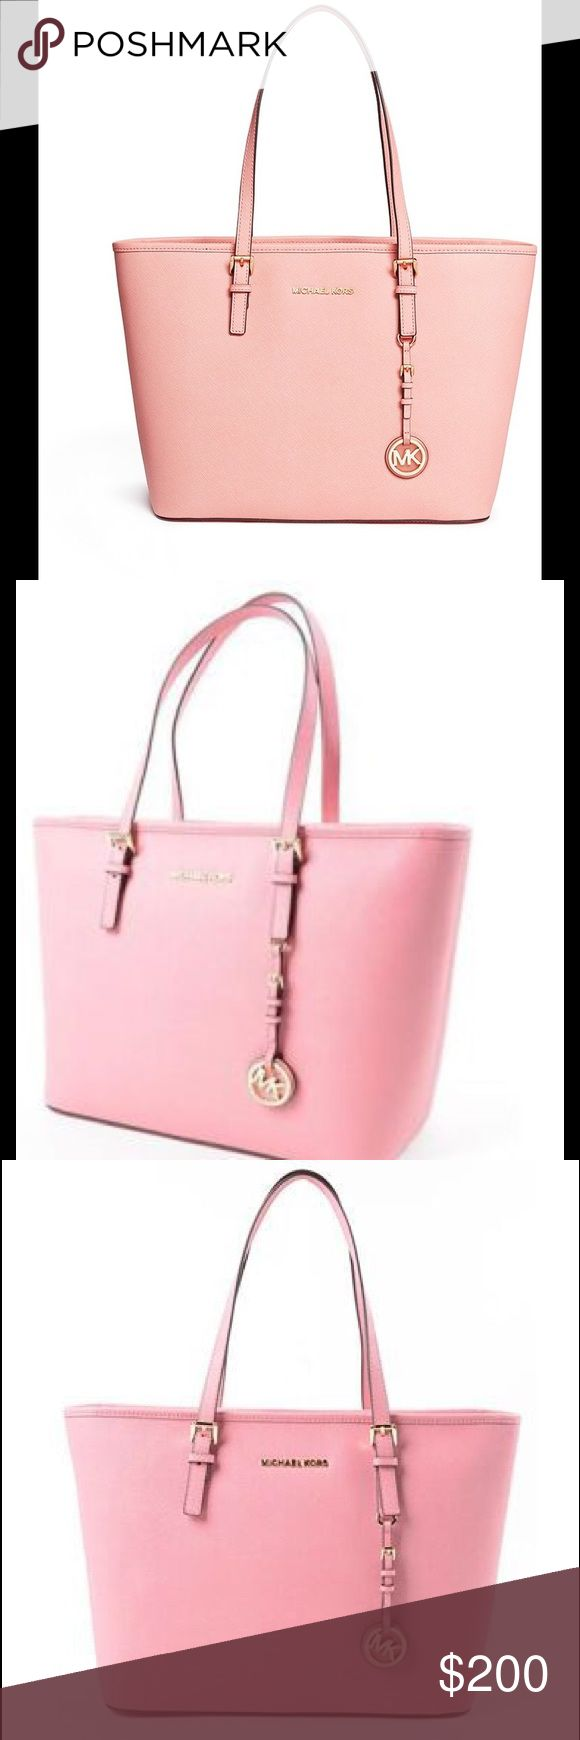 Michael kors pink tote purse New pink tote bag Michael kors Michael Kors Bags Totes